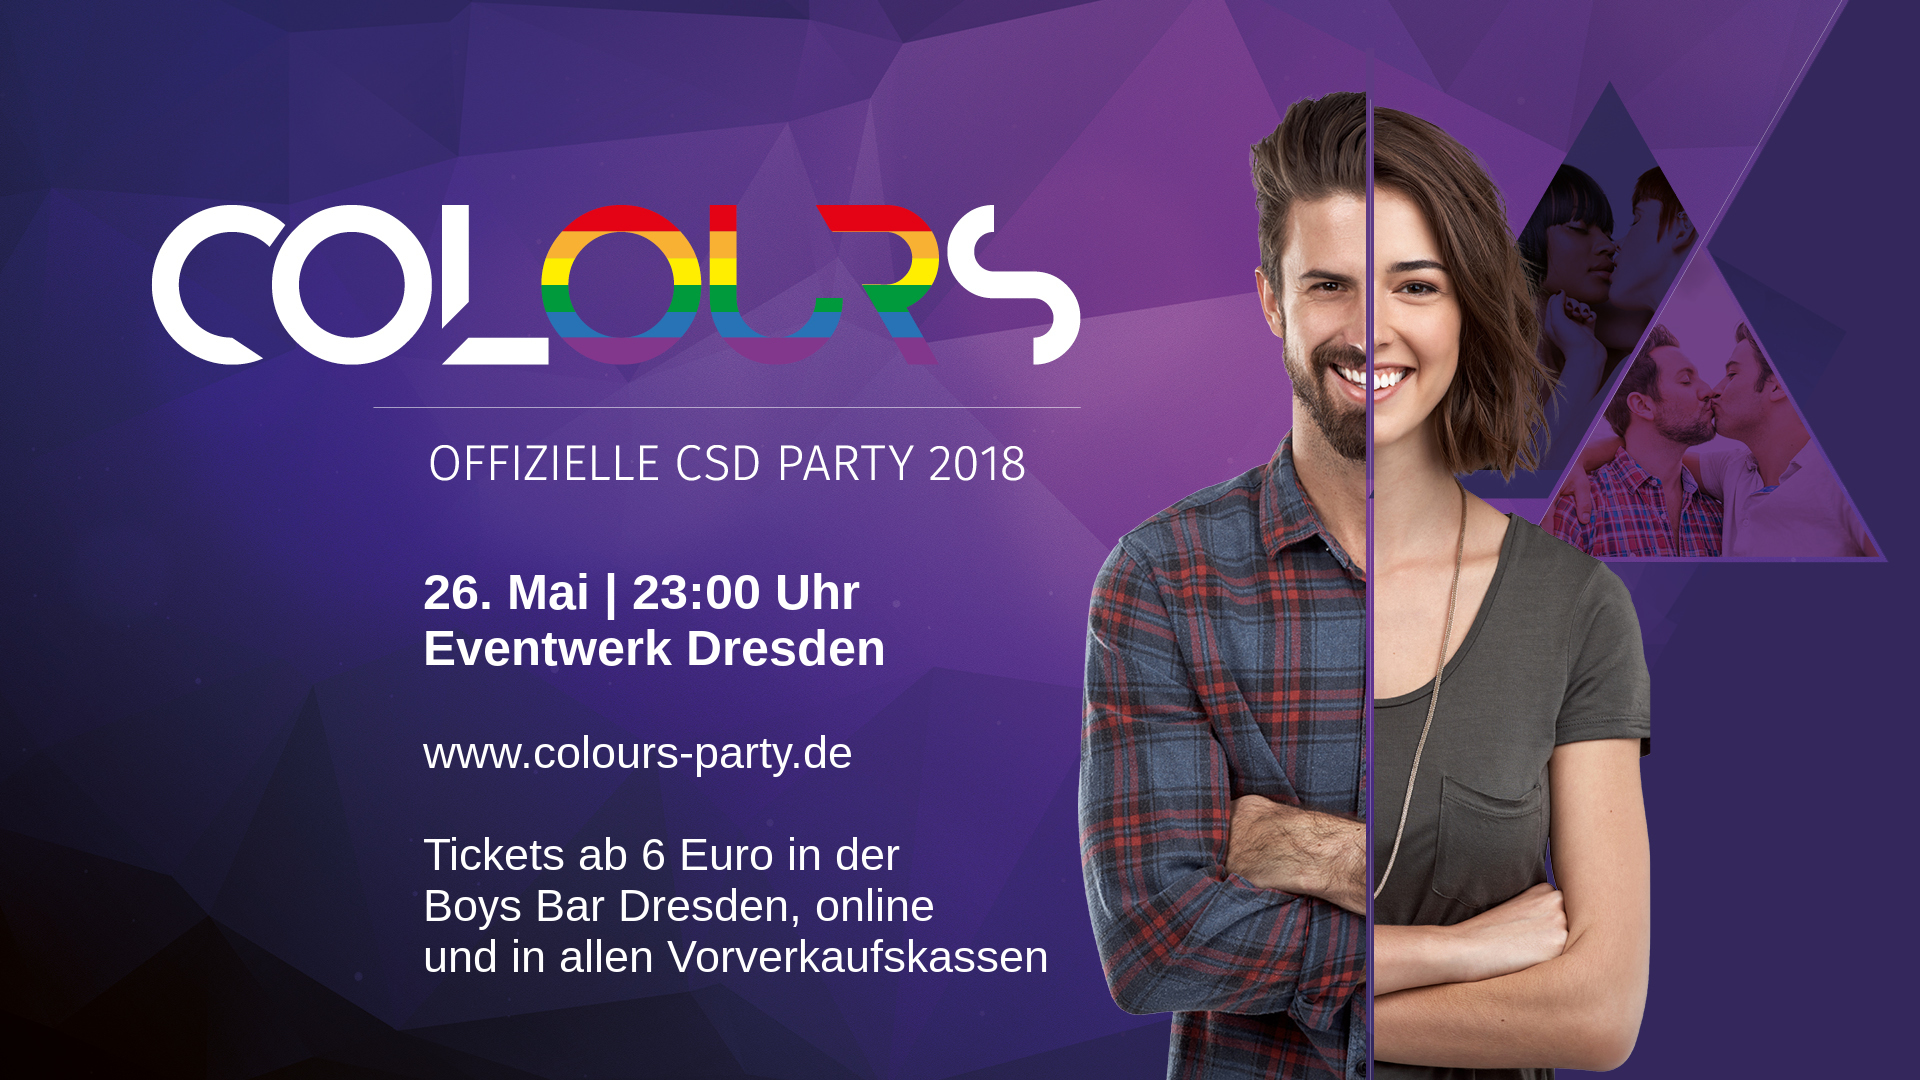 Colours – Offizielle CSD Party im Eventwerk